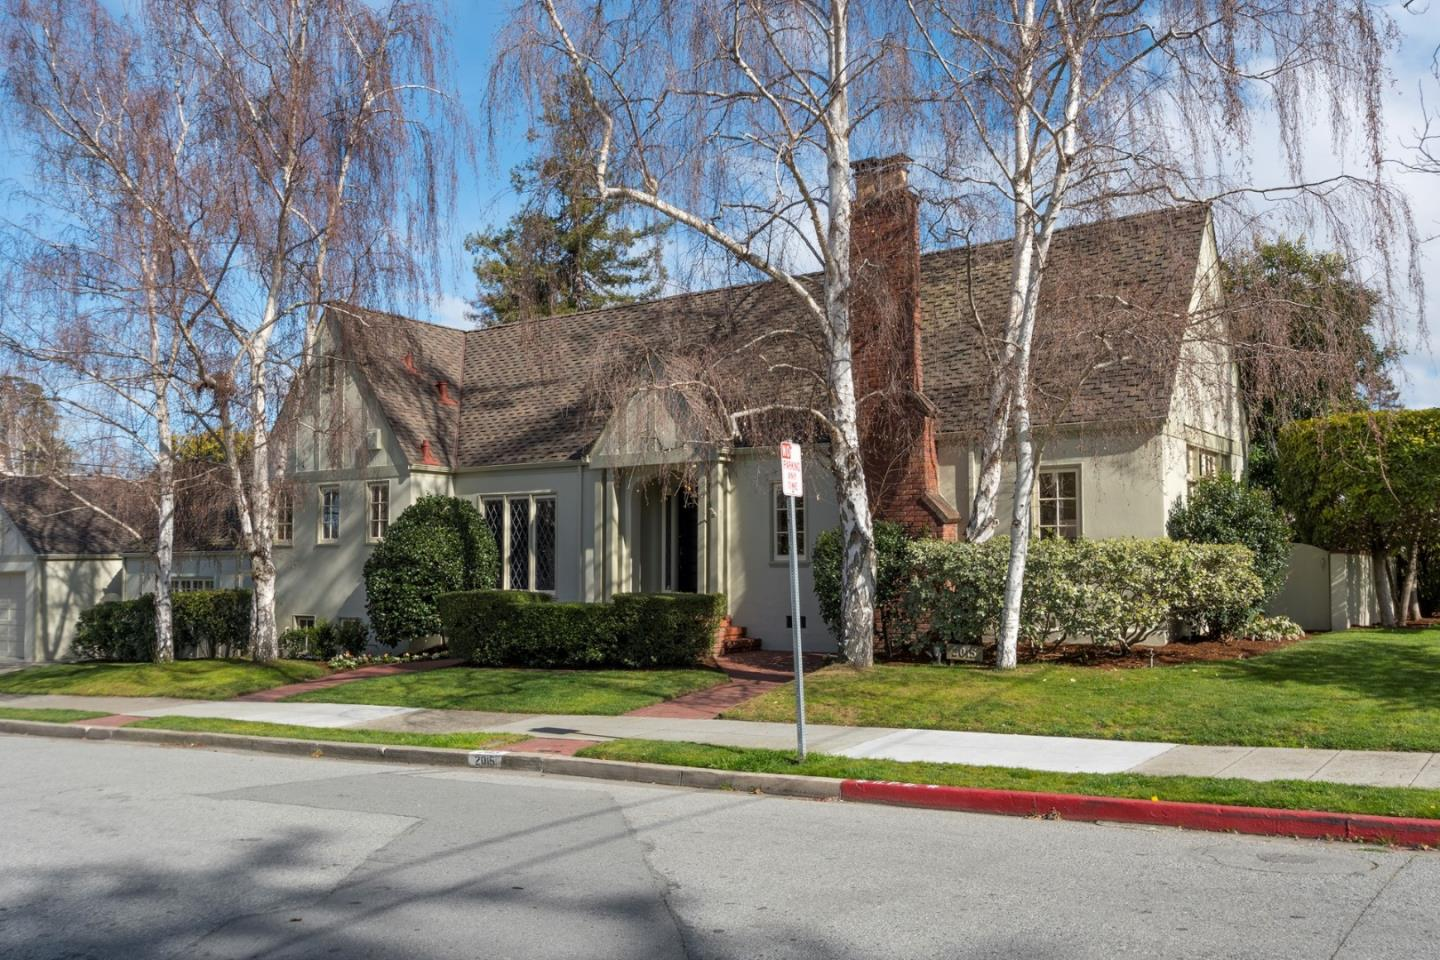 Single Family Home for Sale at 2015 Broadway 2015 Broadway Burlingame, California 94010 United States